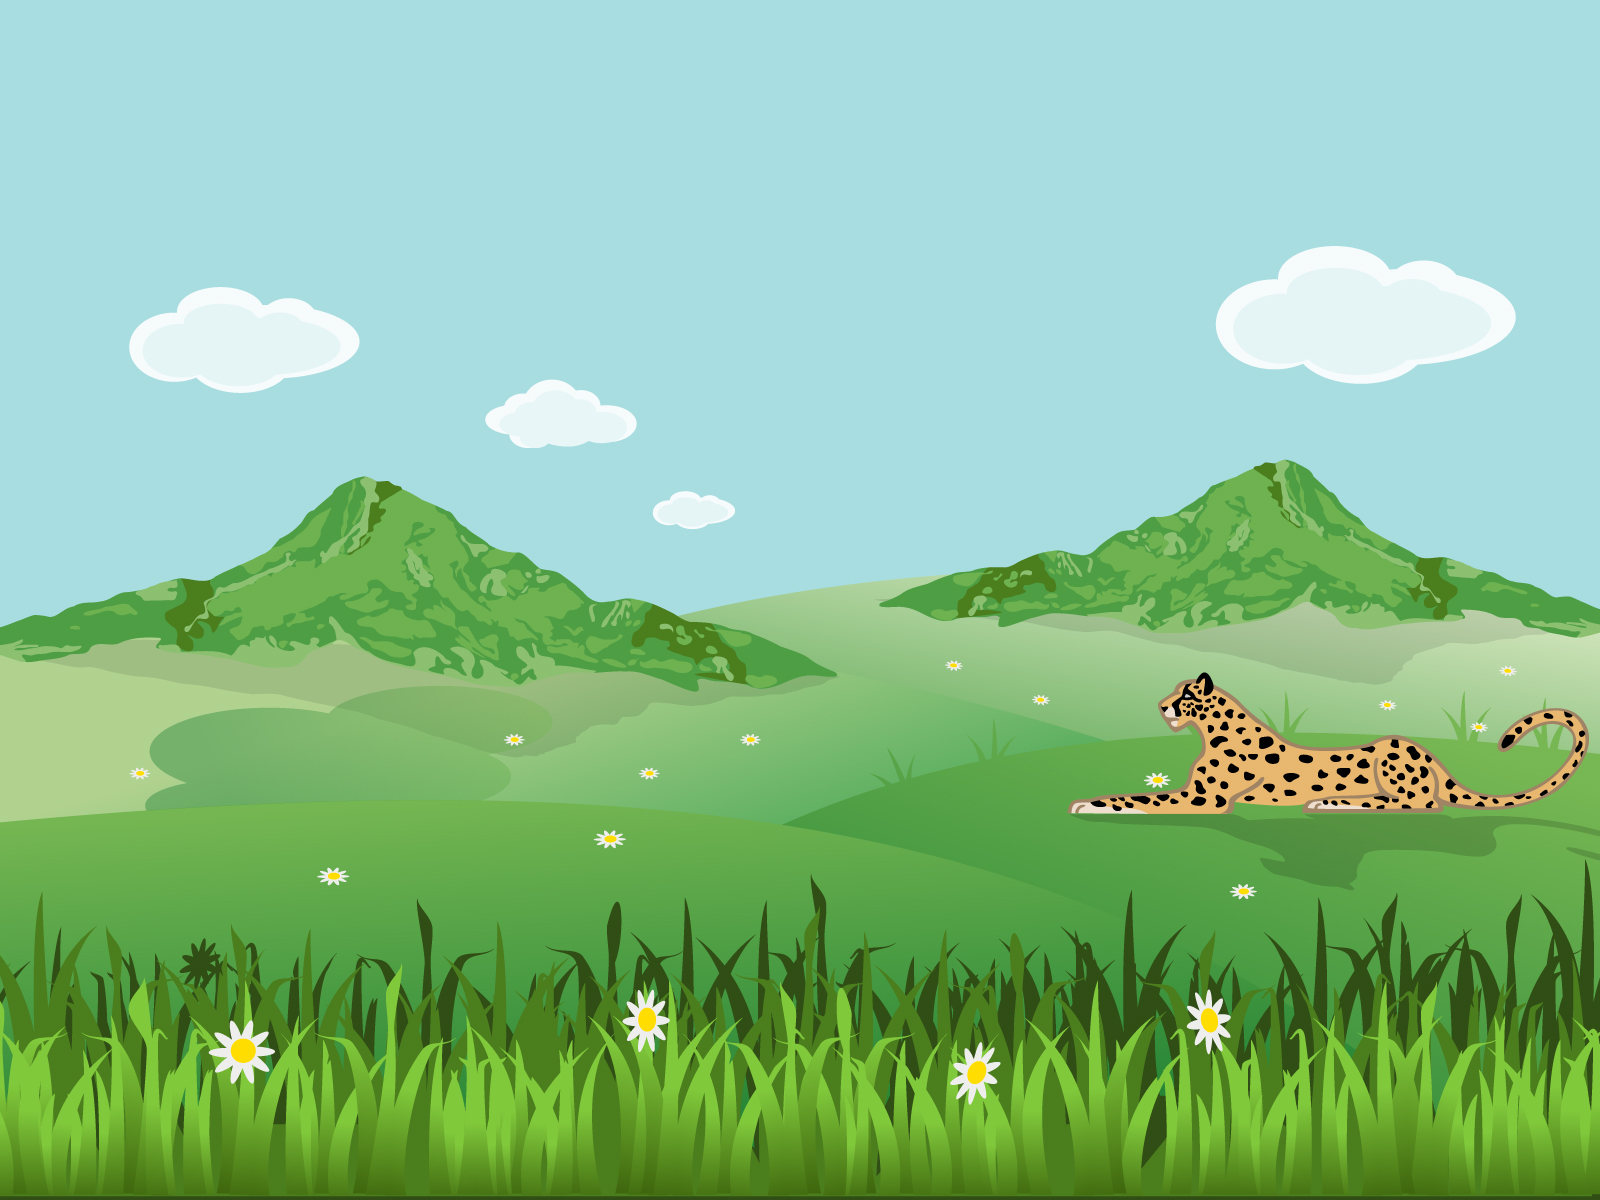 leopard on landscape backgrounds animals green nature templates free ppt grounds and. Black Bedroom Furniture Sets. Home Design Ideas